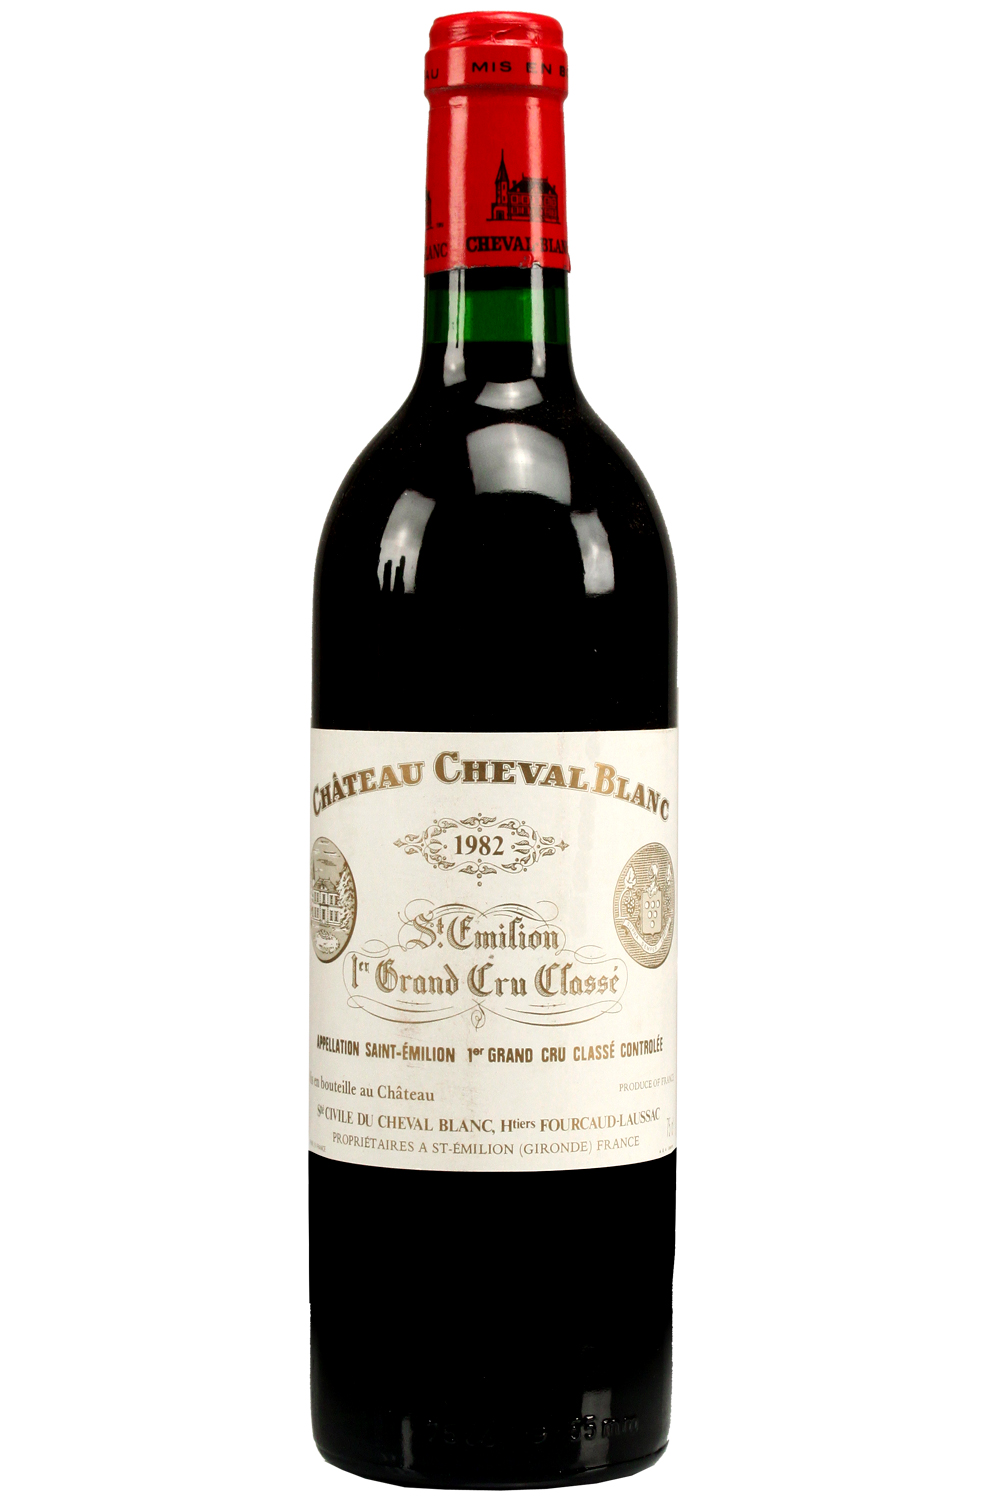 1982 Cheval Blanc Bordeaux Red 750 ml